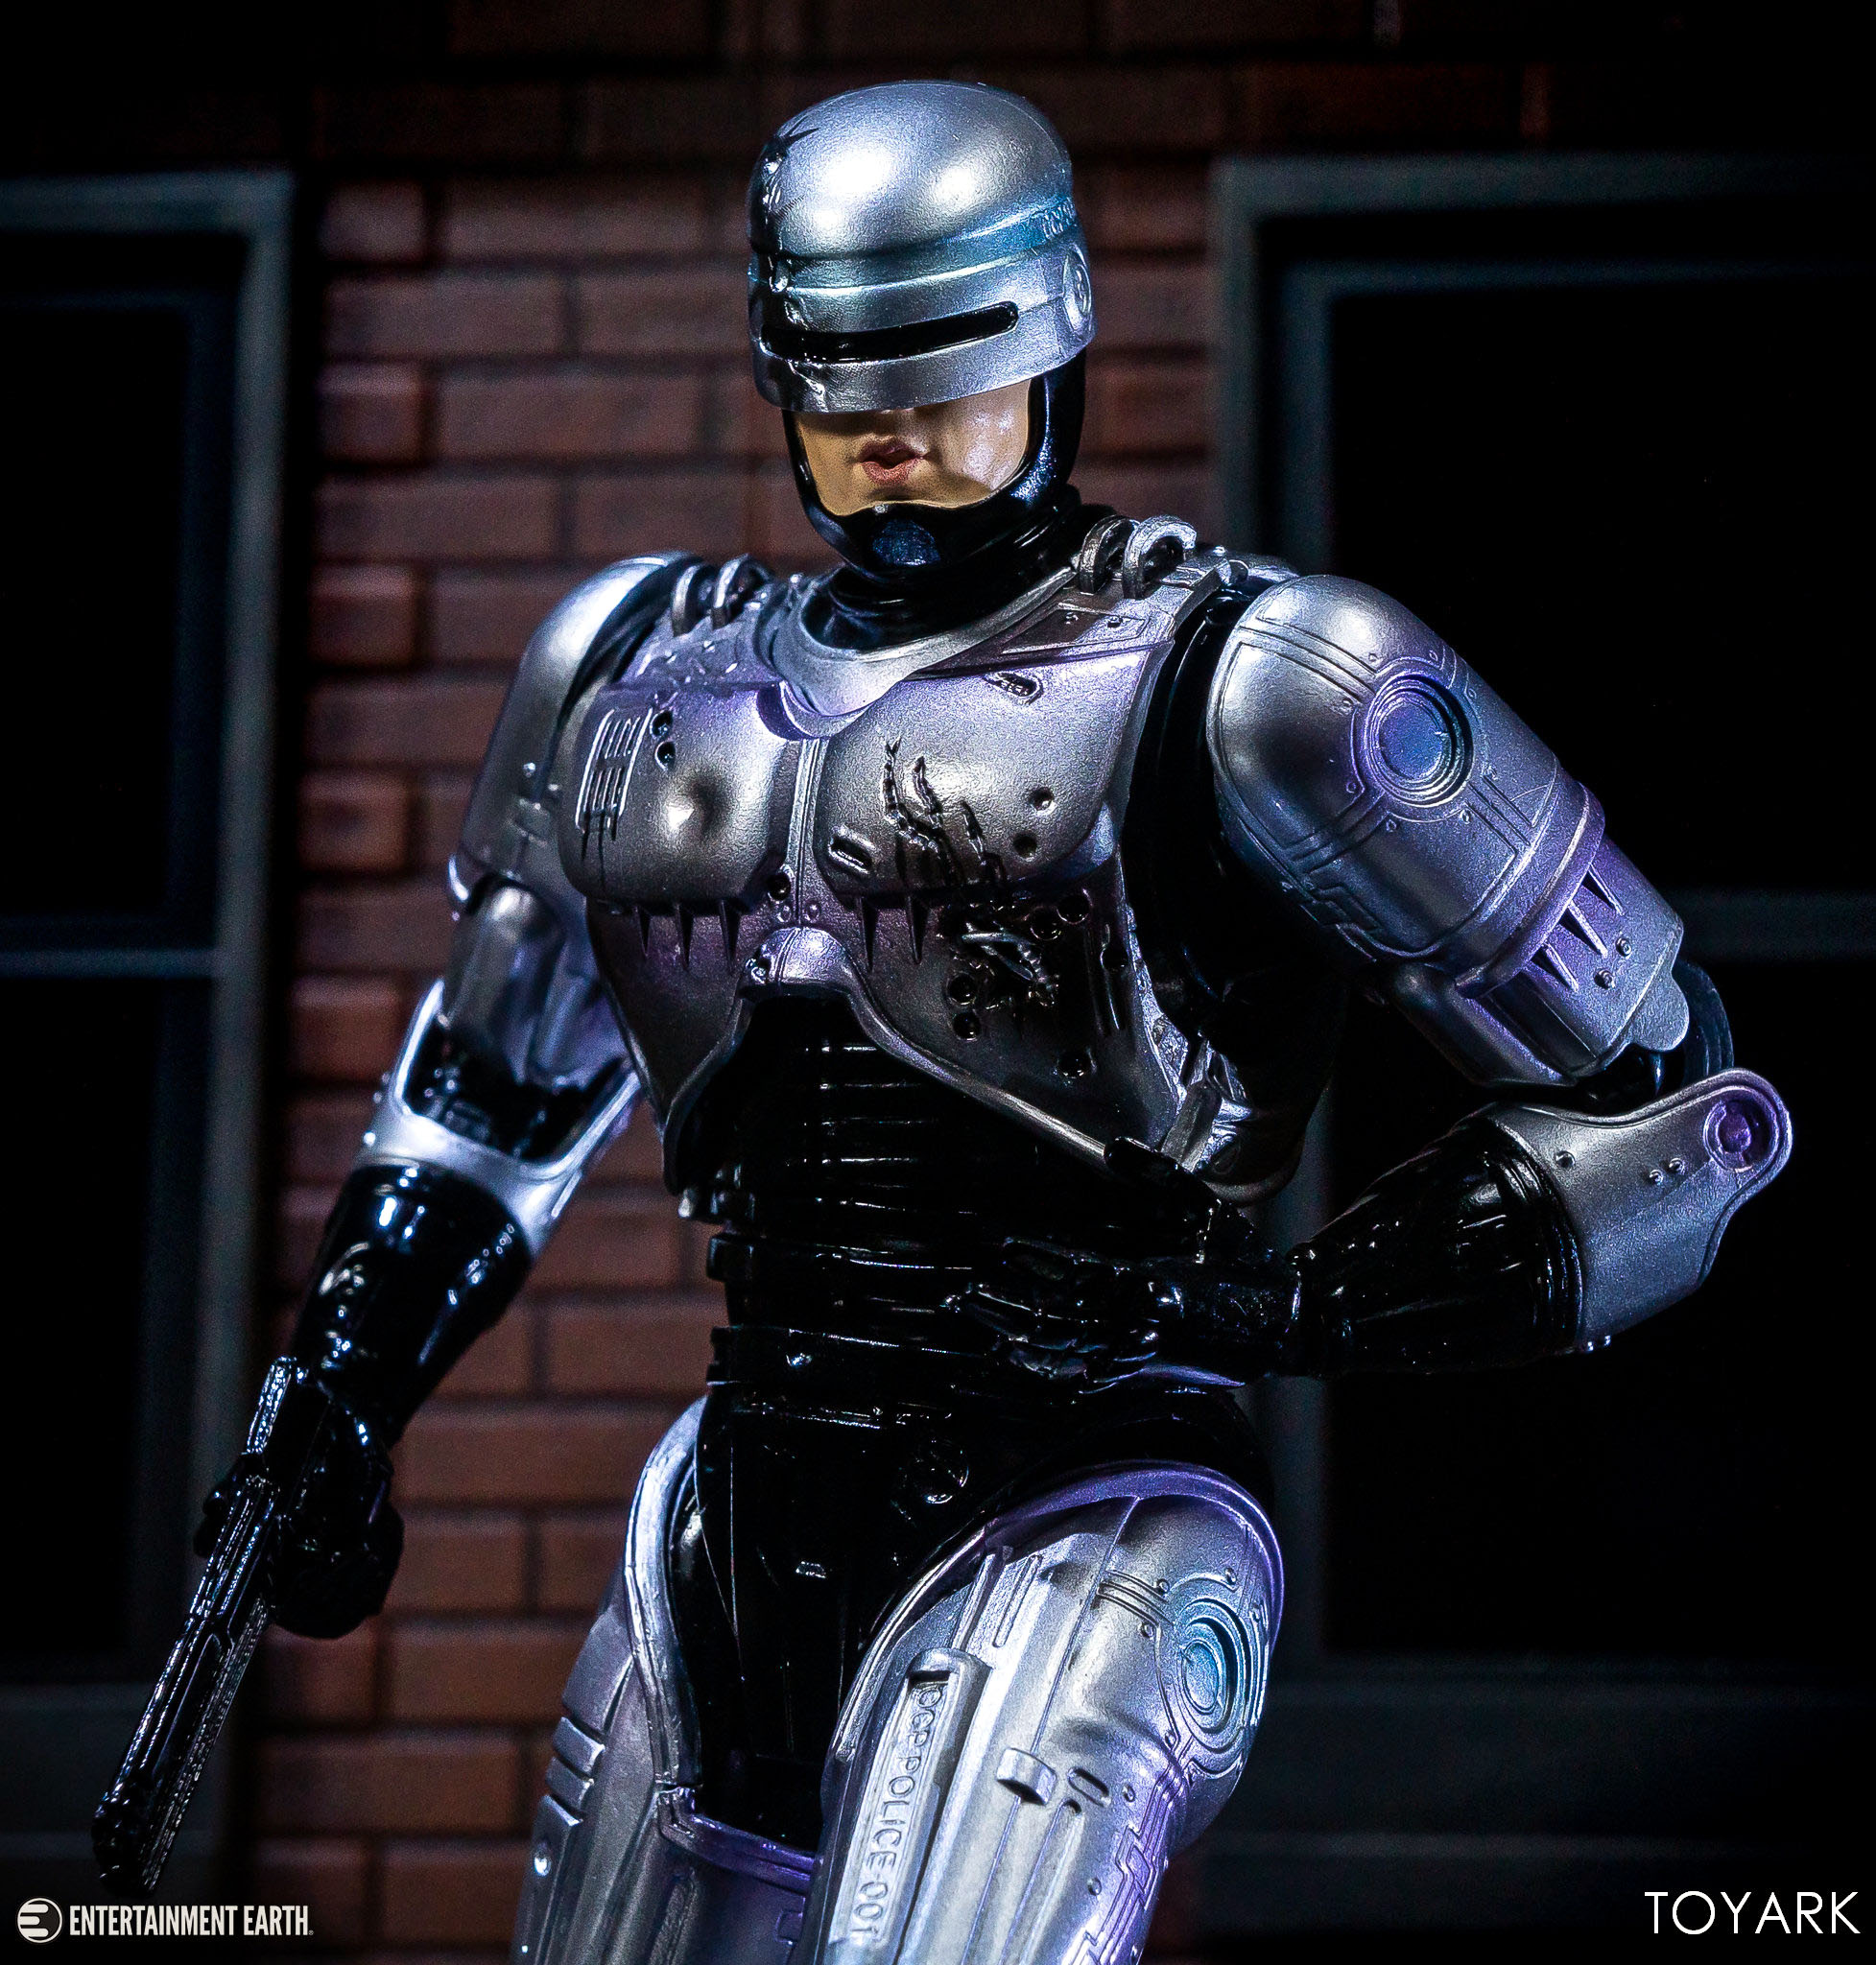 https://news.toyark.com/wp-content/uploads/sites/4/2019/03/MAFEX-Robocop-Gallery-018.jpg